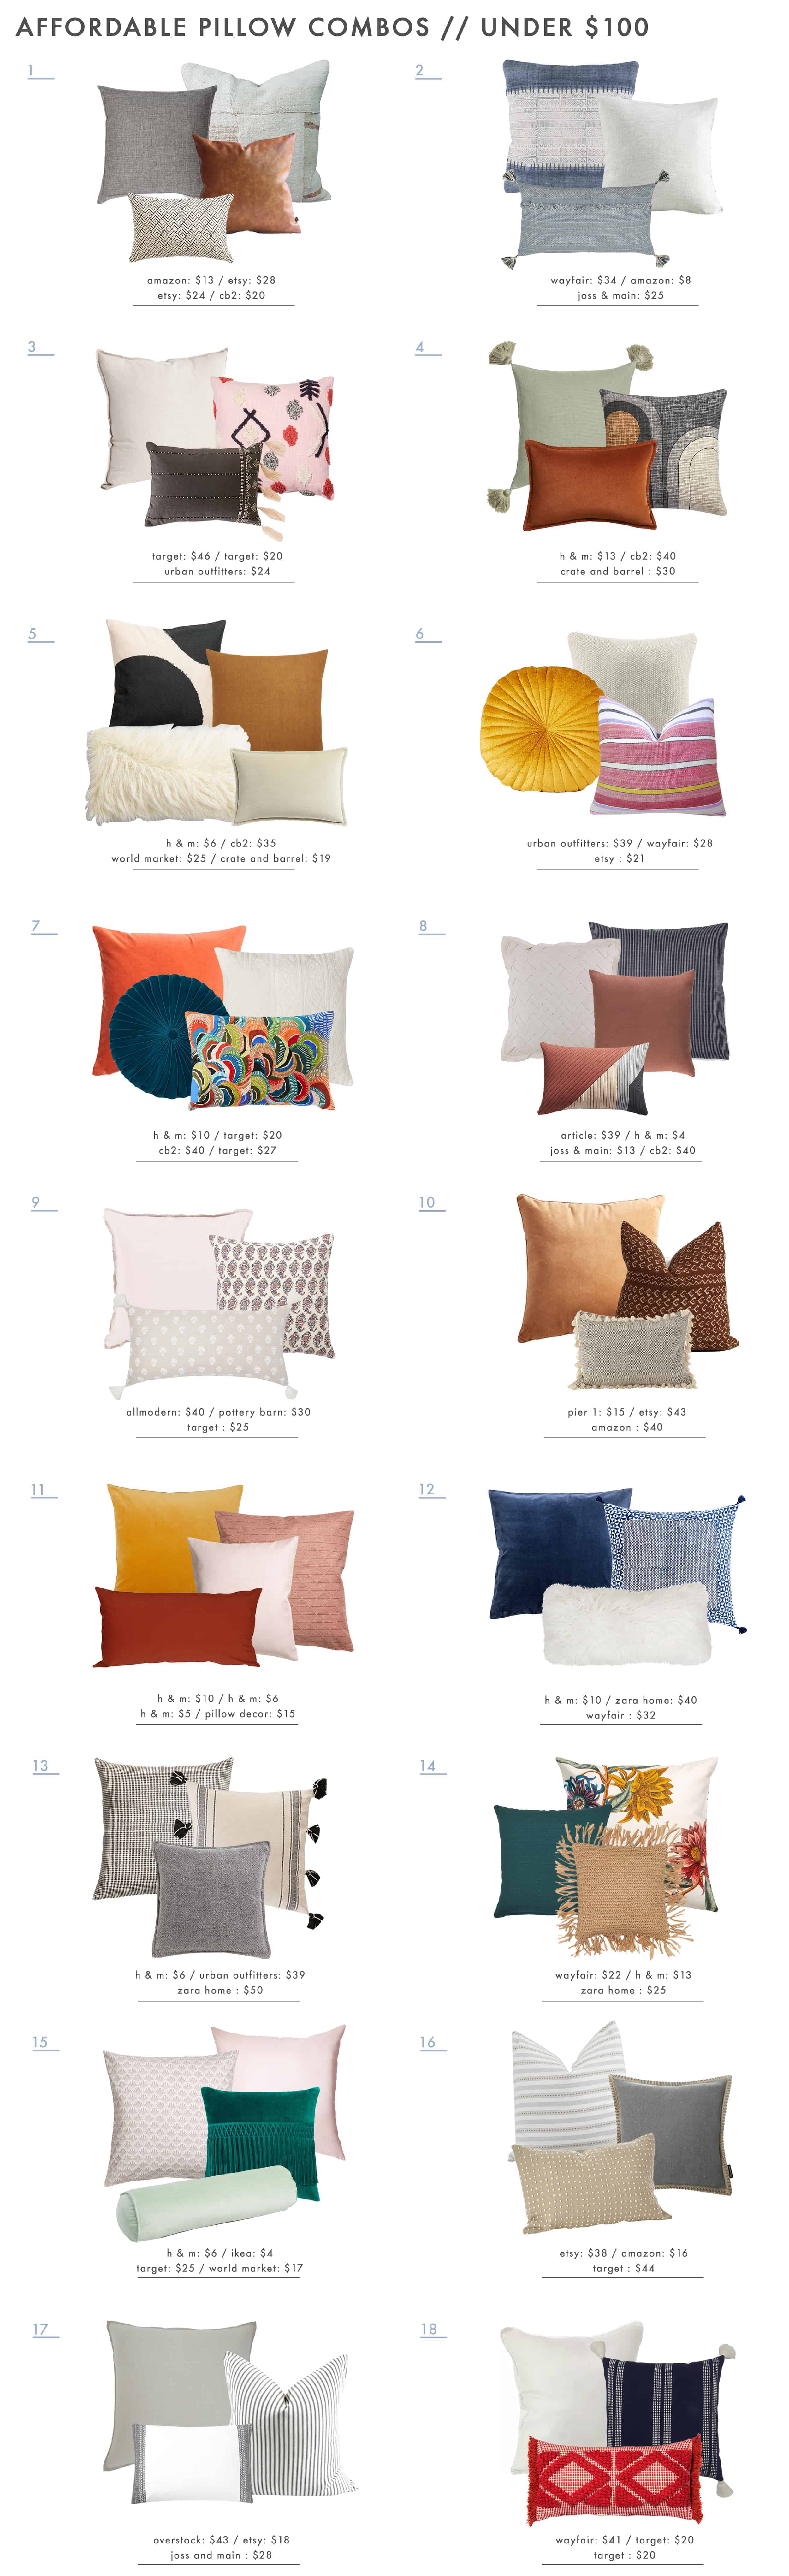 Emily Henderson Affordable Pillow Combos Roundup1